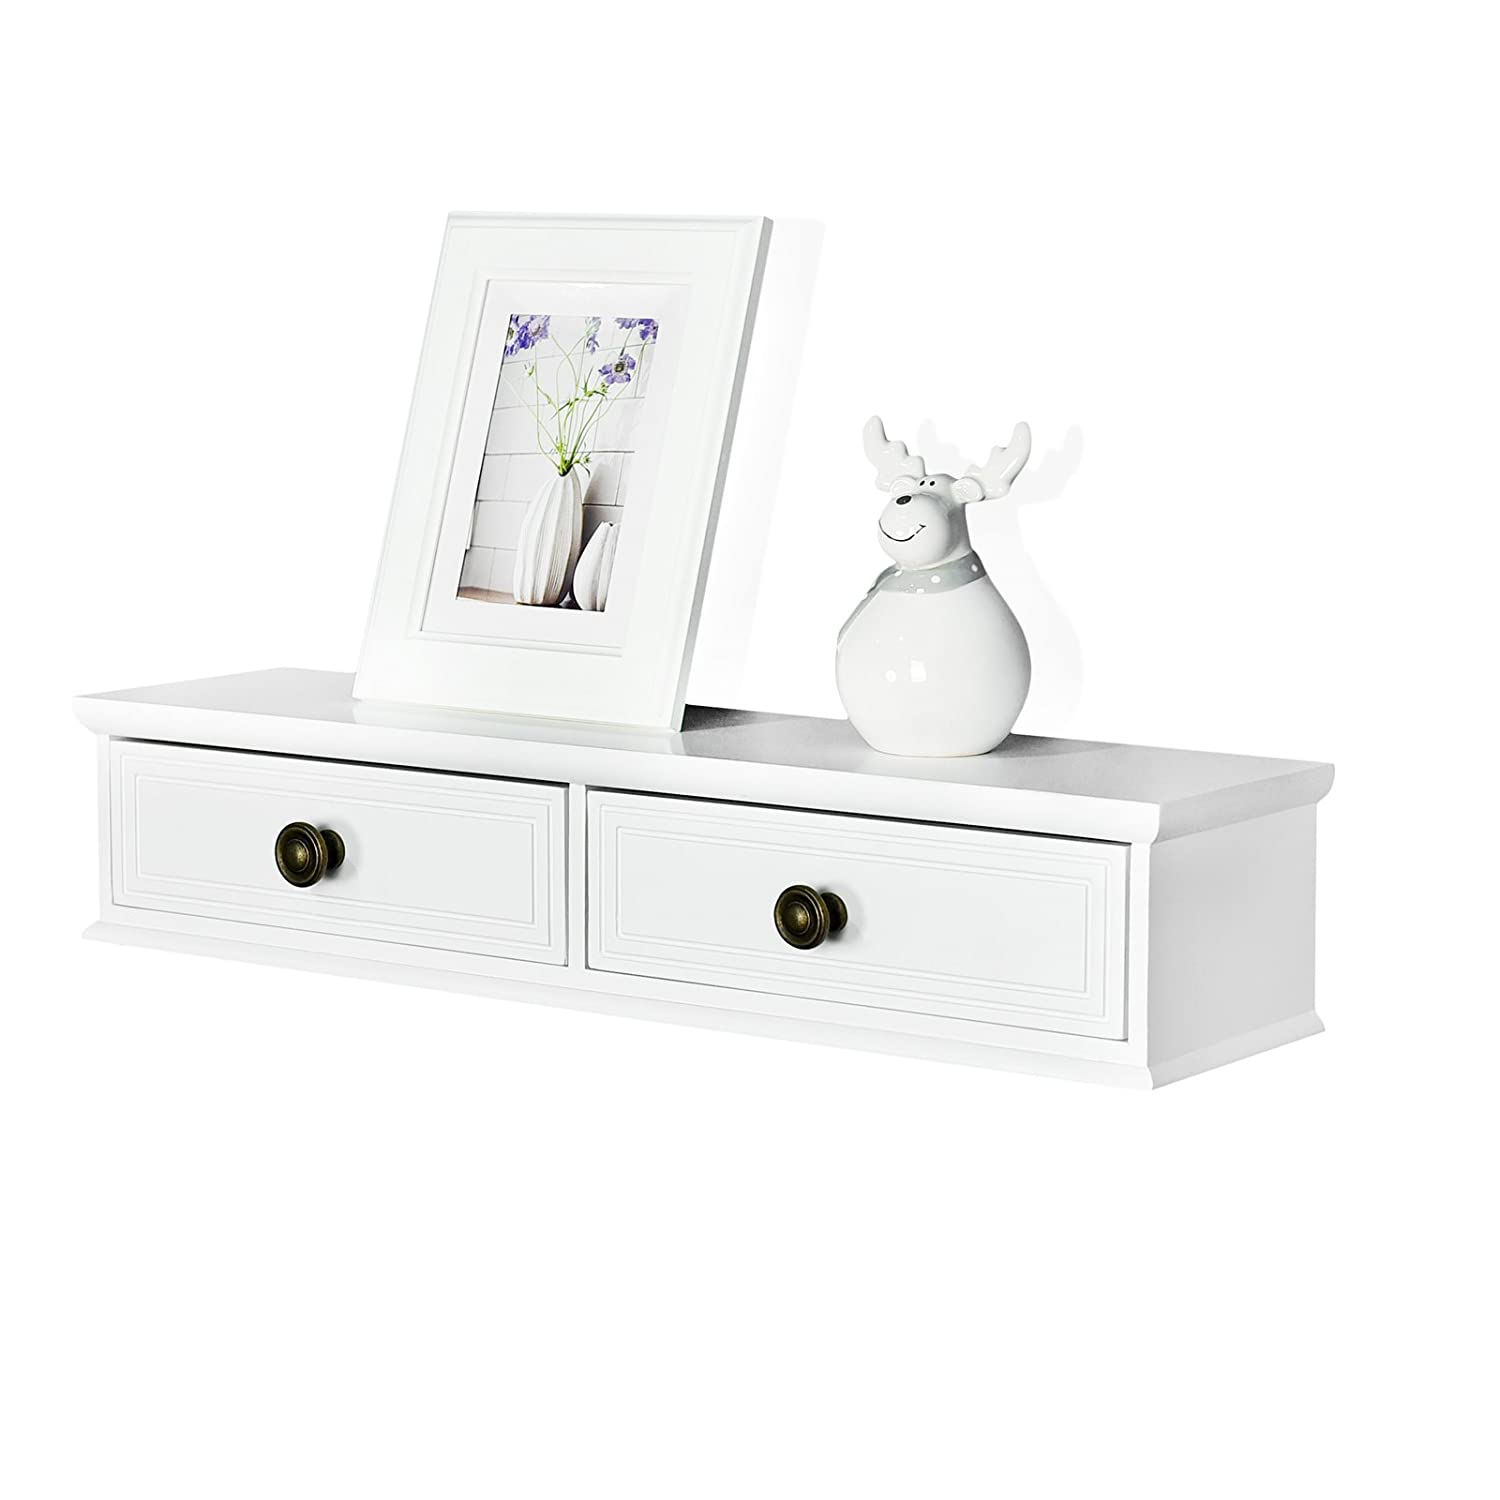 Welland Floating Shelves Wall-mounted Storage Shelf 2 Drawers Entryway  White Wall Shelf, A/v Components Other Media Accessories (245inch)